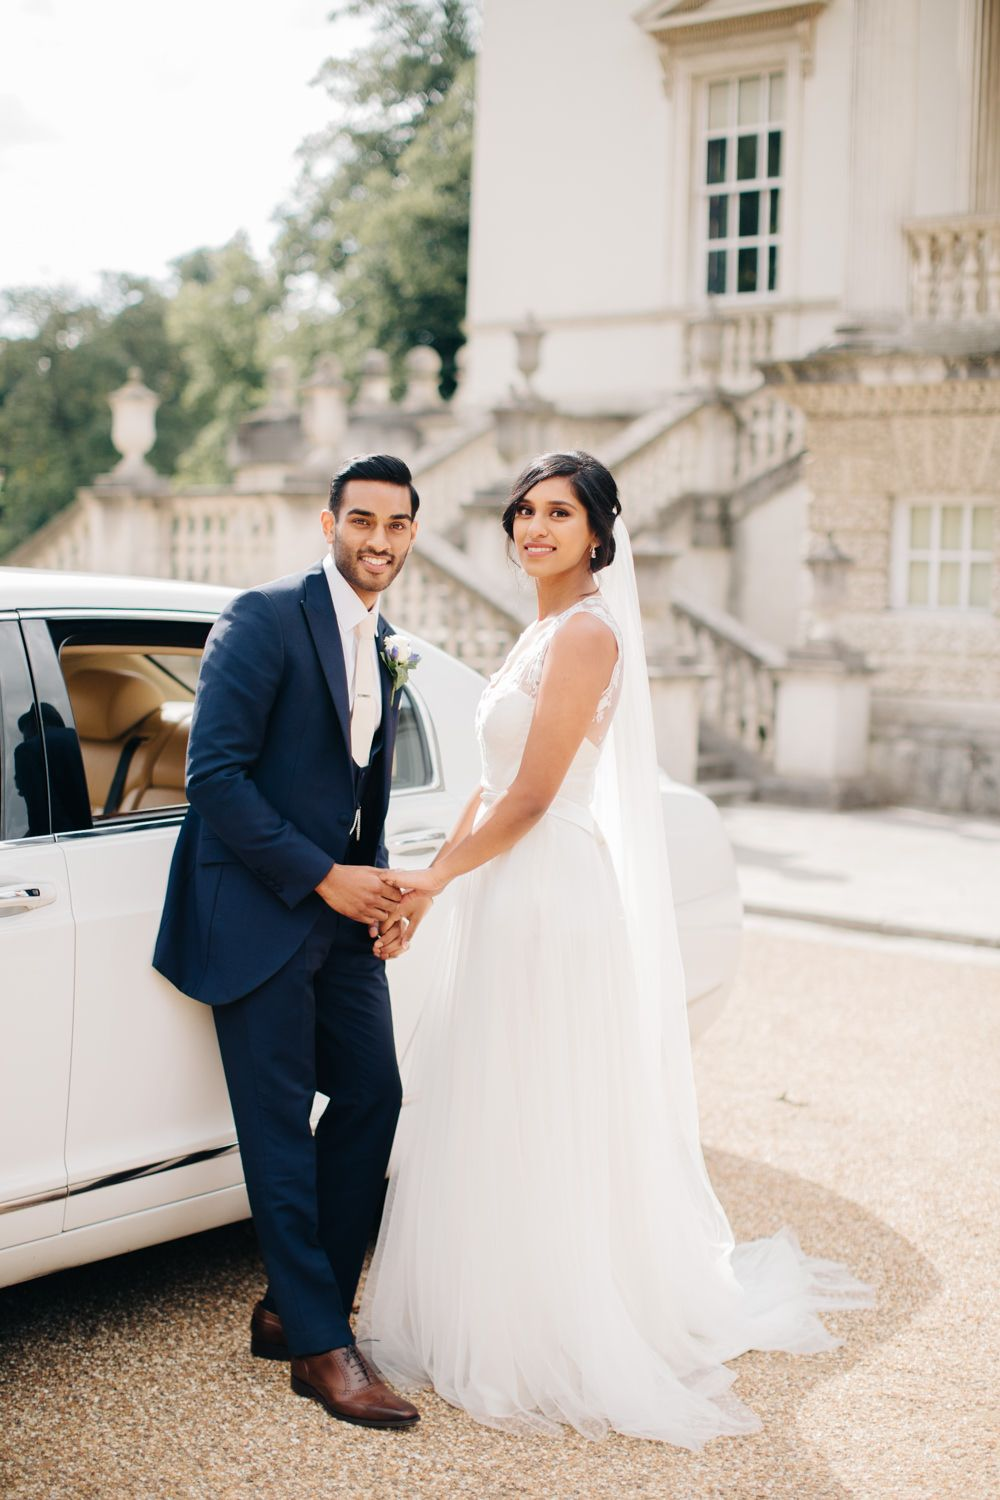 Elegant wedding at chiswick house london mj photography elegant wedding at chiswick house london mj photography ombrellifo Image collections